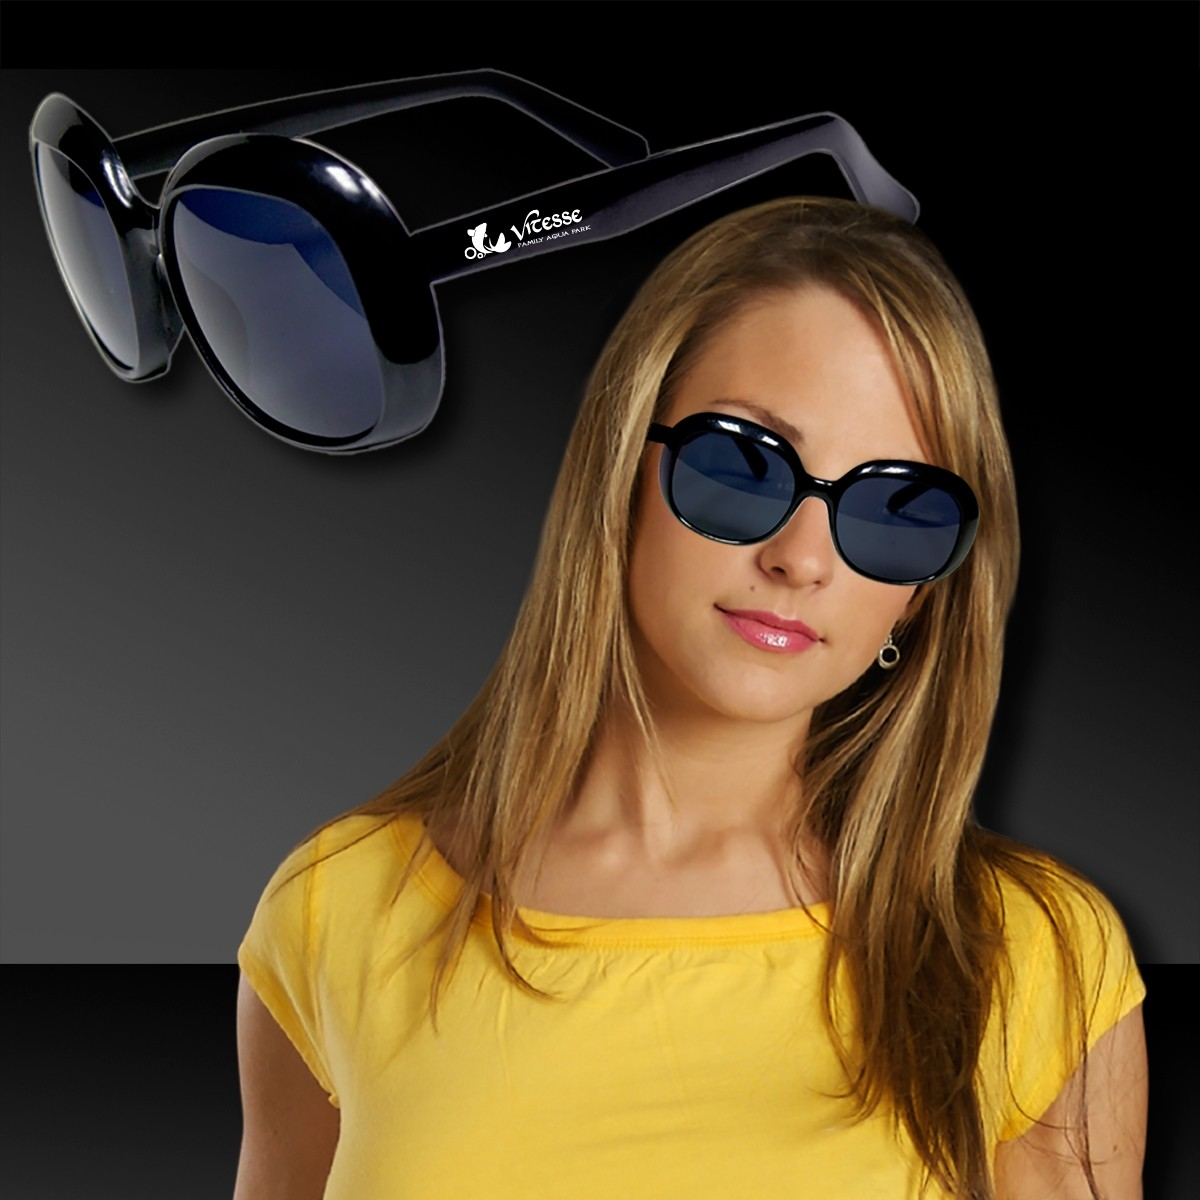 WOMEN'S BLACK FASHION SUNGLASS